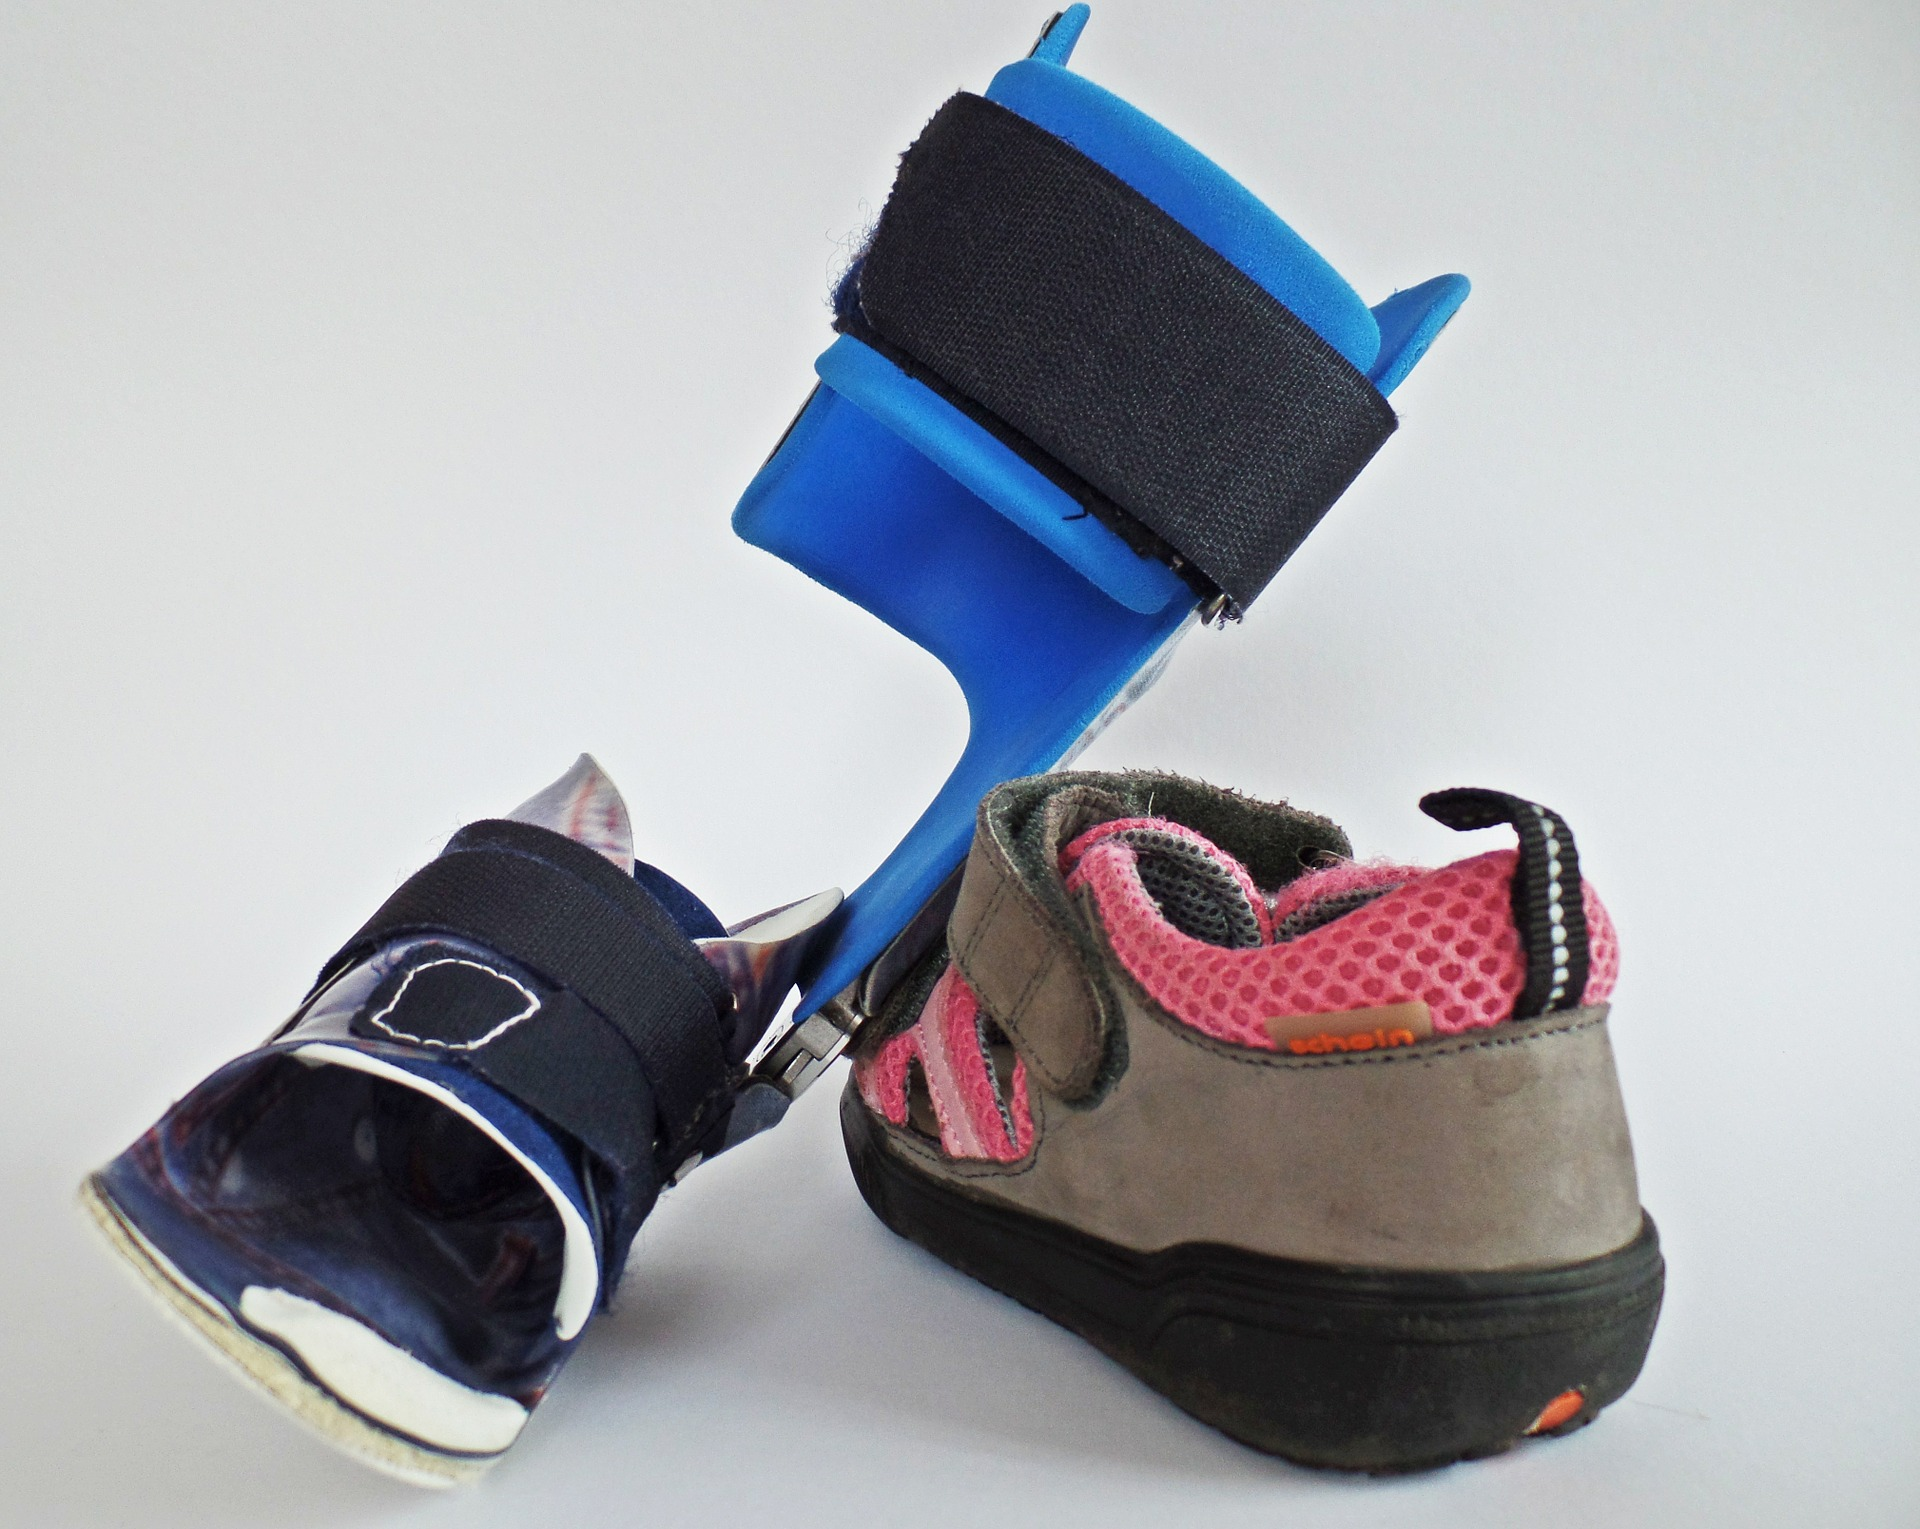 orthosis 449685 1920 - Semi Custom Orthotic Therapy